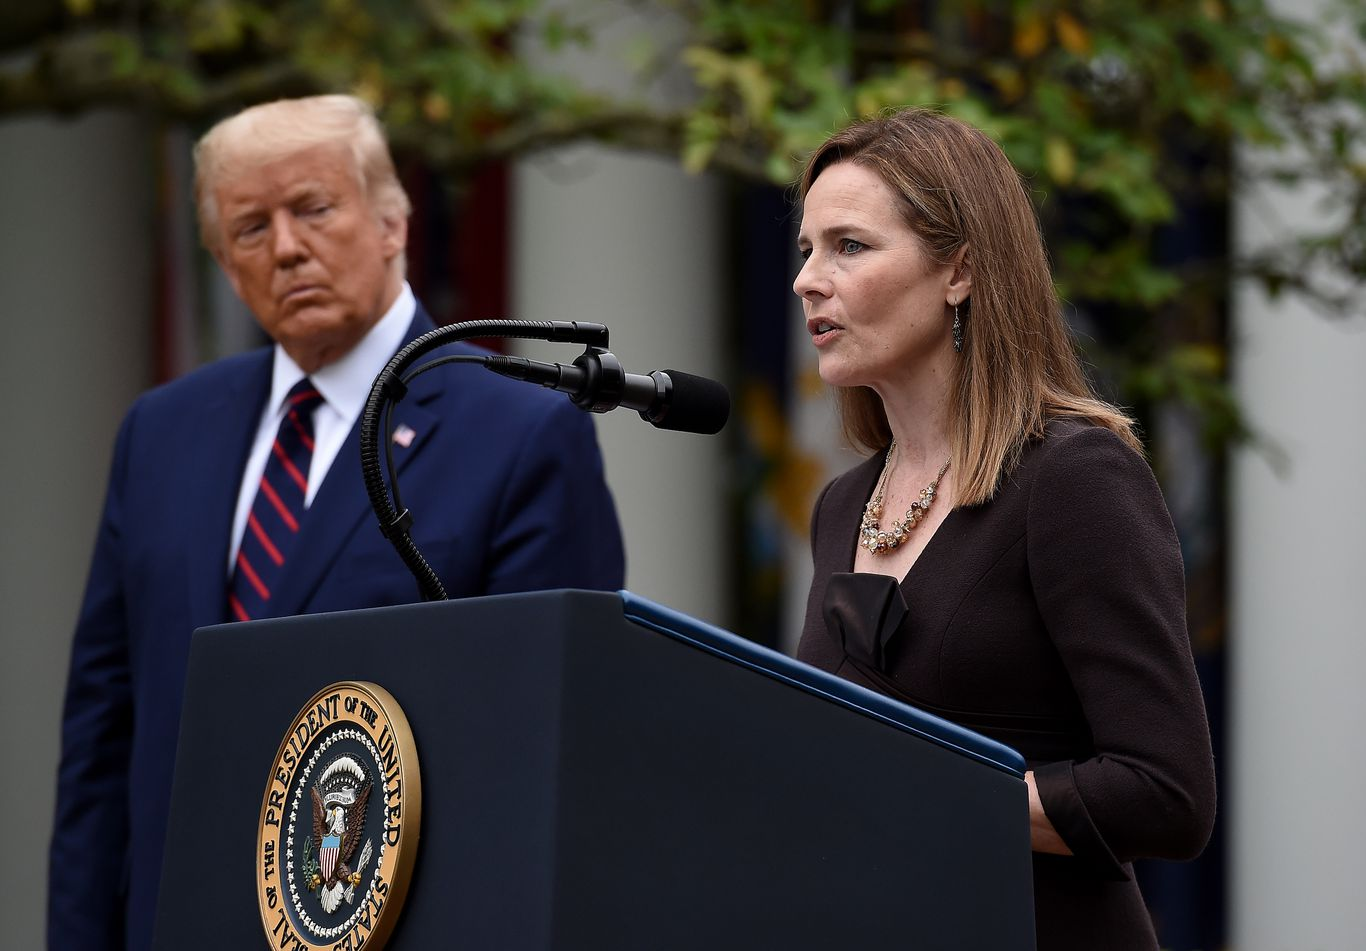 Amy Coney Barrett says Trump offered her nomination 3 days after Ginsburg's death